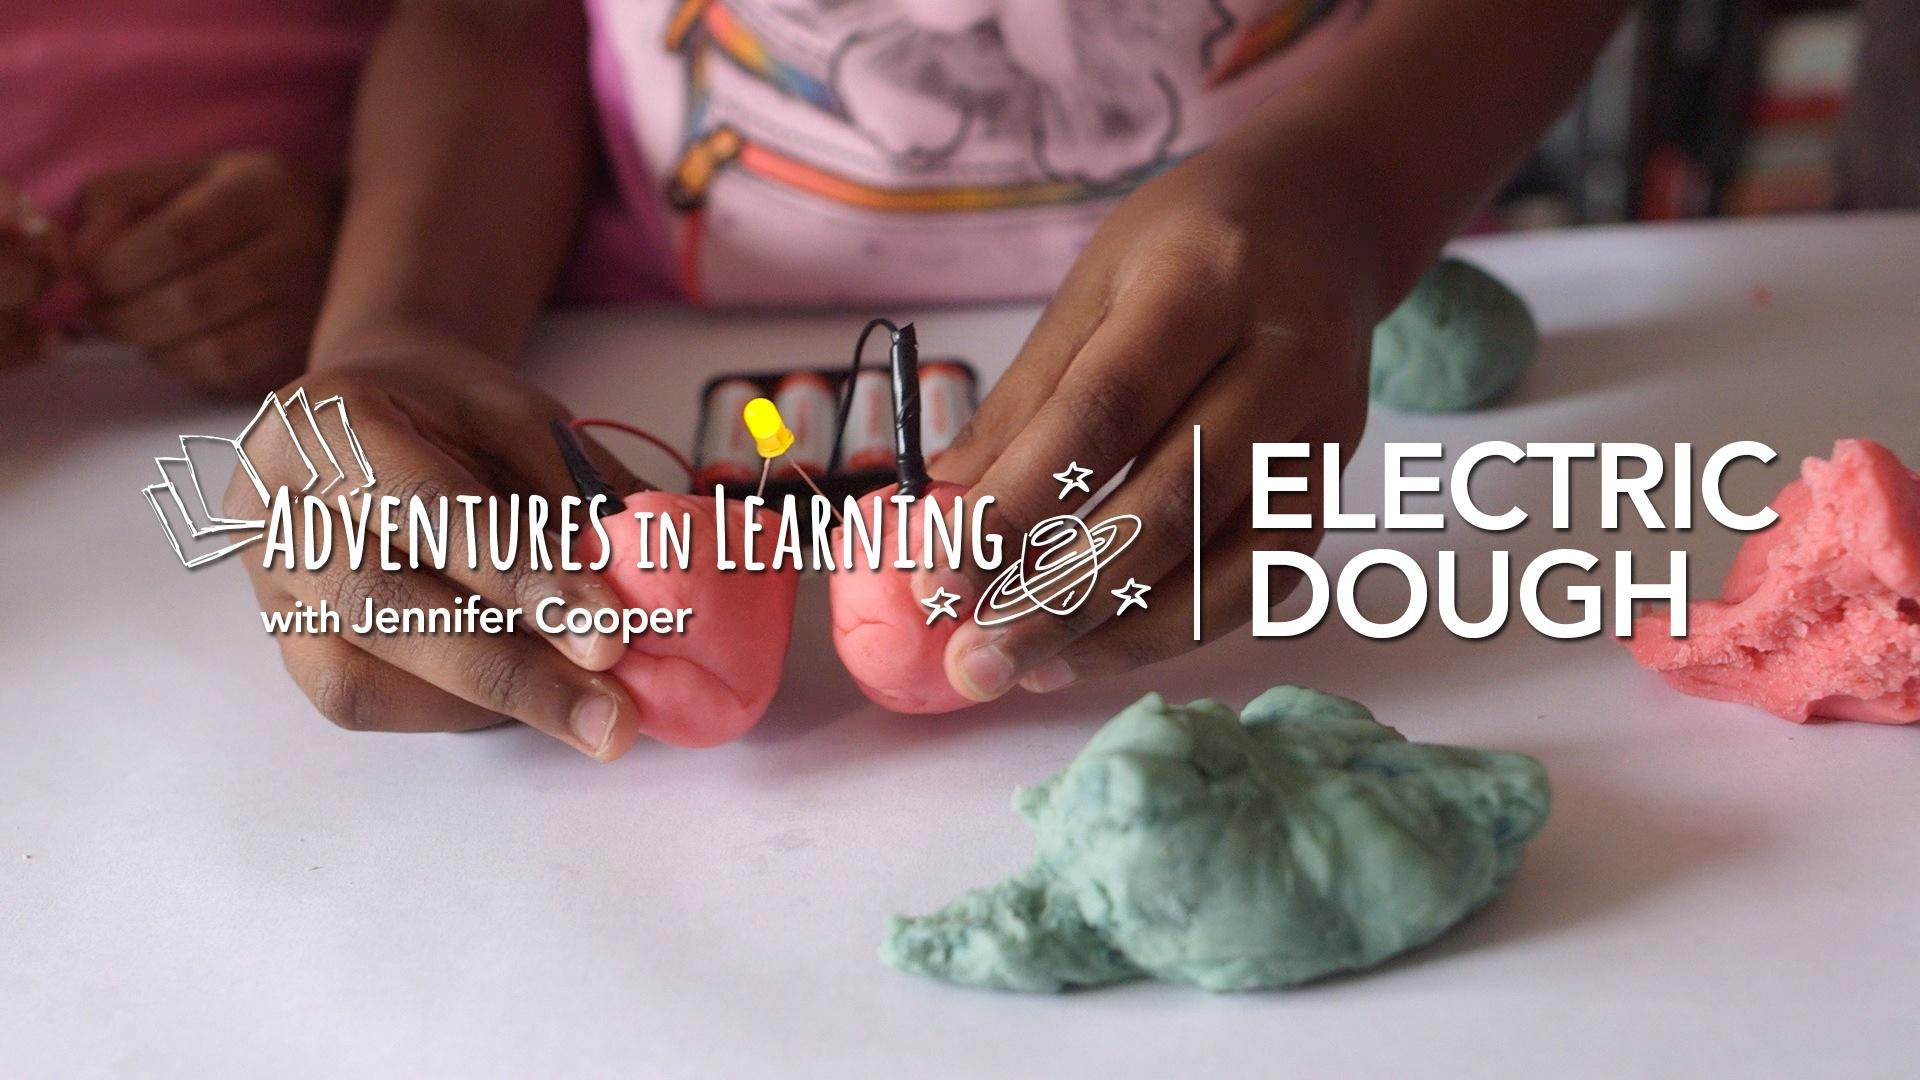 Electric Play Dough and Circuits for Kids image